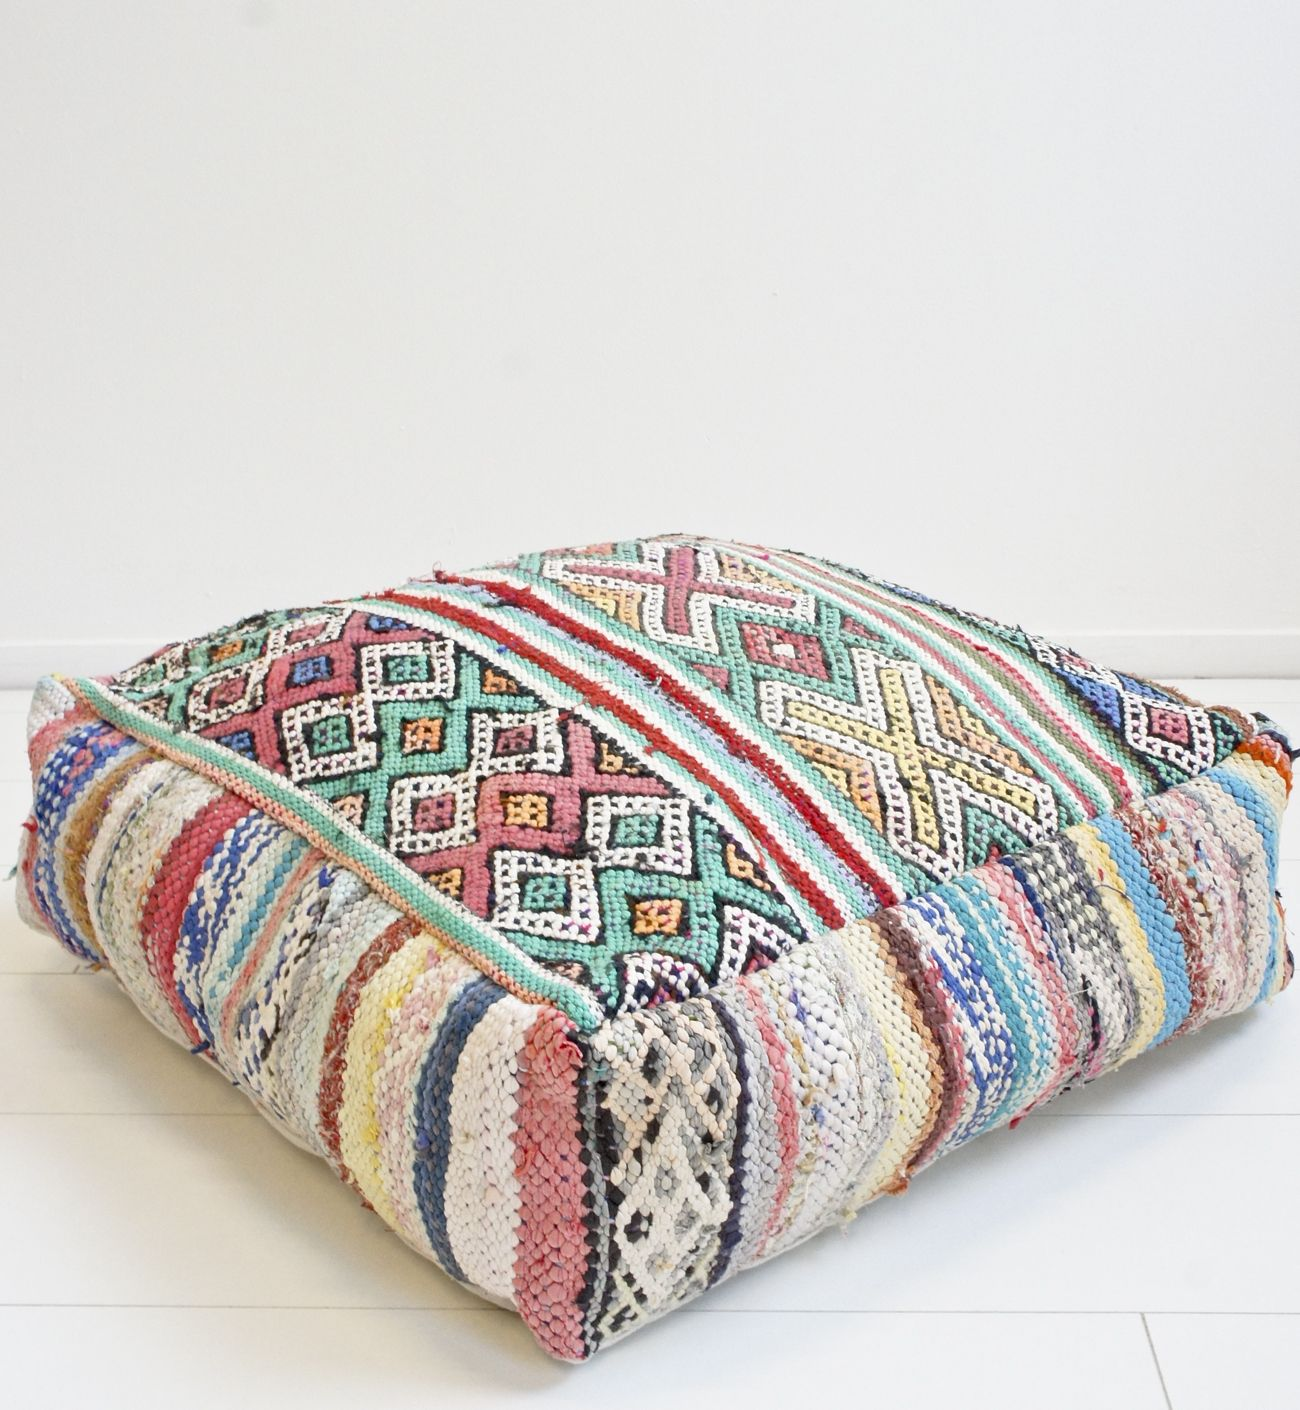 couch acce astonishing throw native made feat shape pillow additional pillows designs home giant large floor design with from arranged colorful small ideas moroccan into